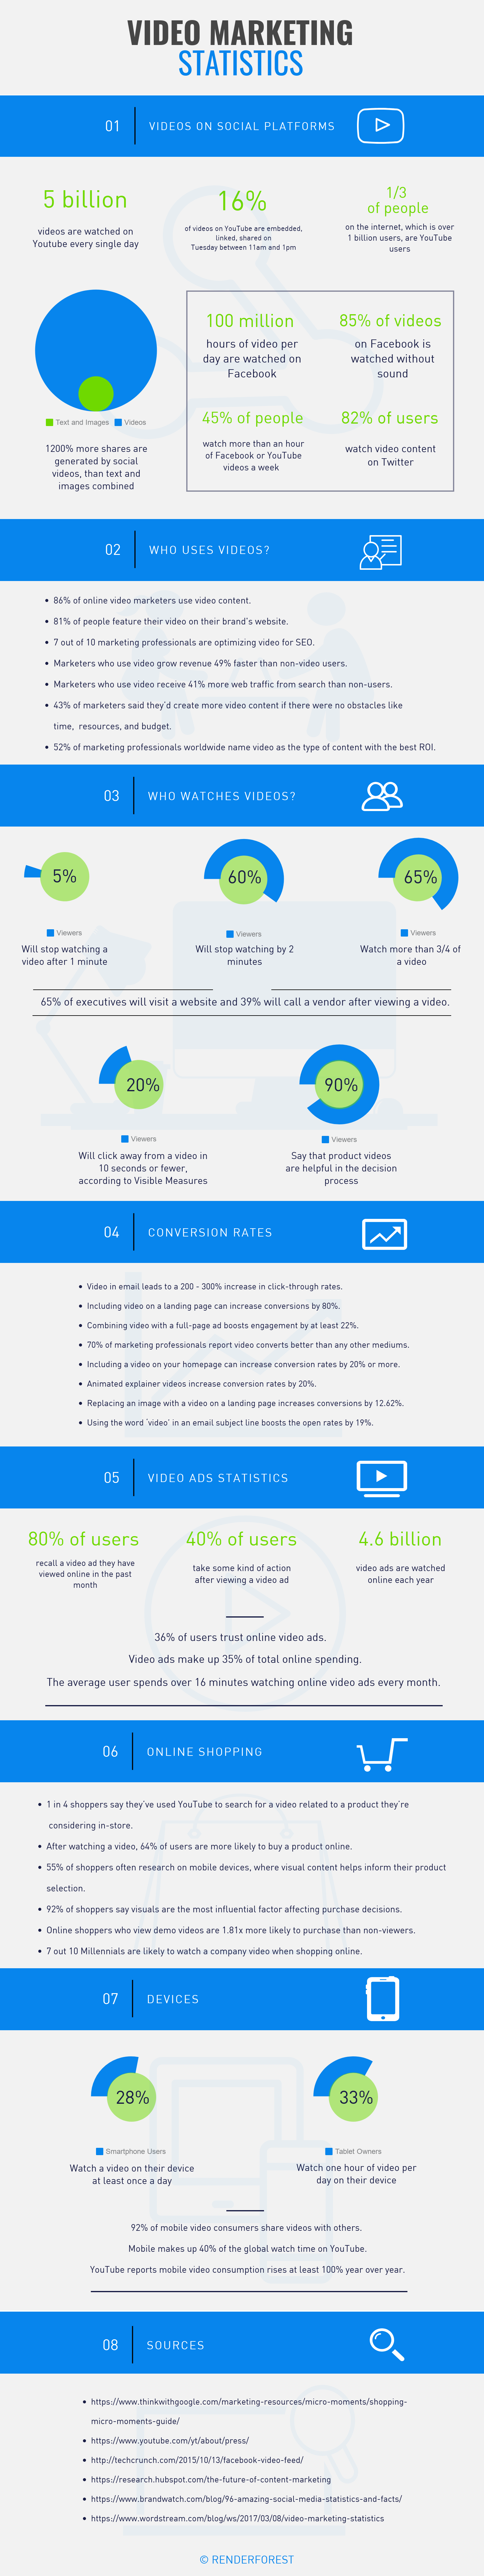 Infographic looks at video usage stats and trends